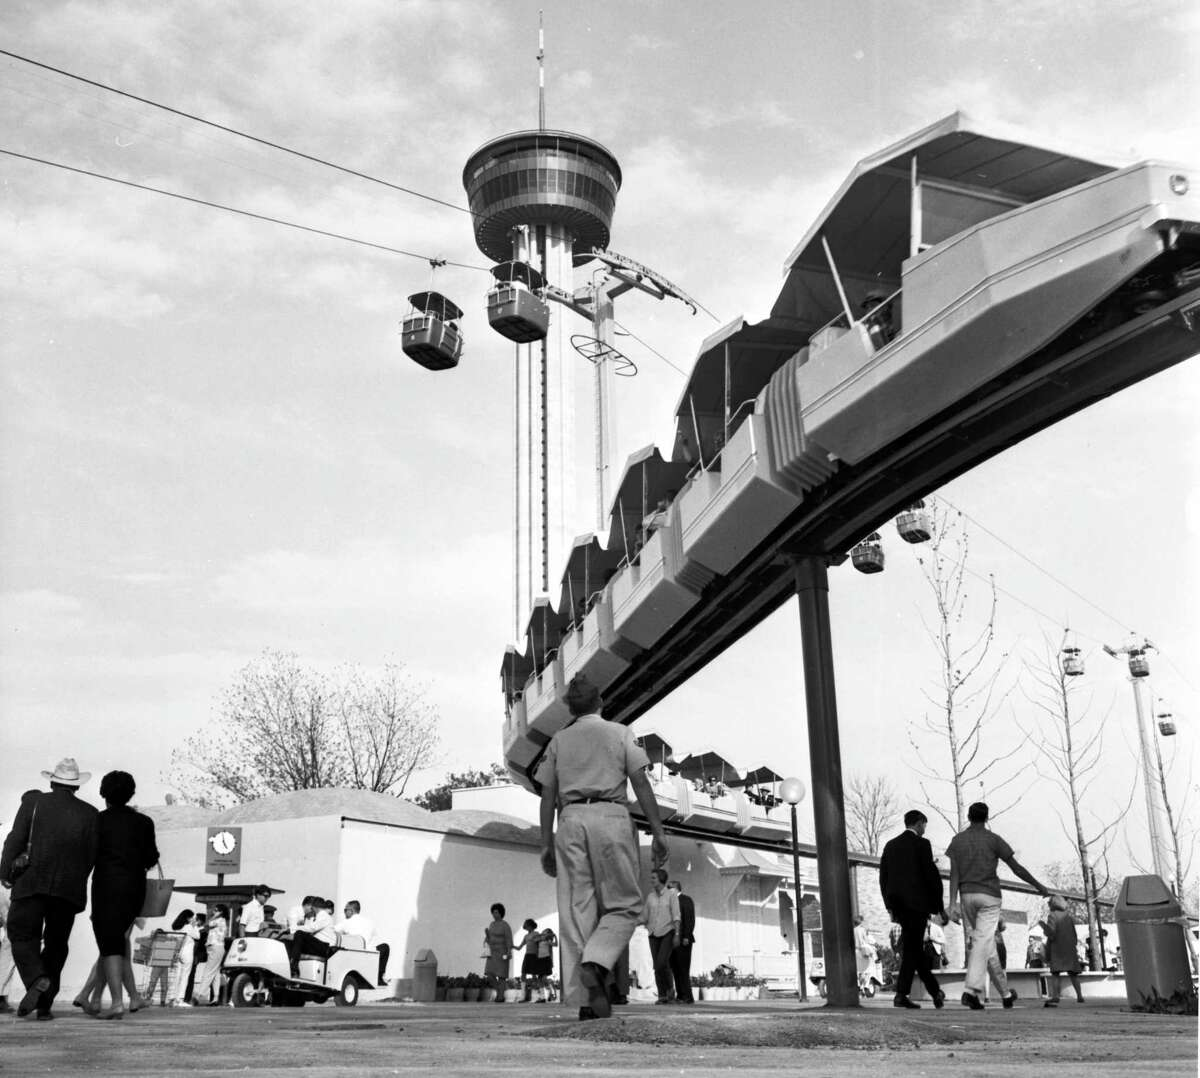 HemisFair 1968 -- Monorail, with skyride and Tower of the Americas in the background.